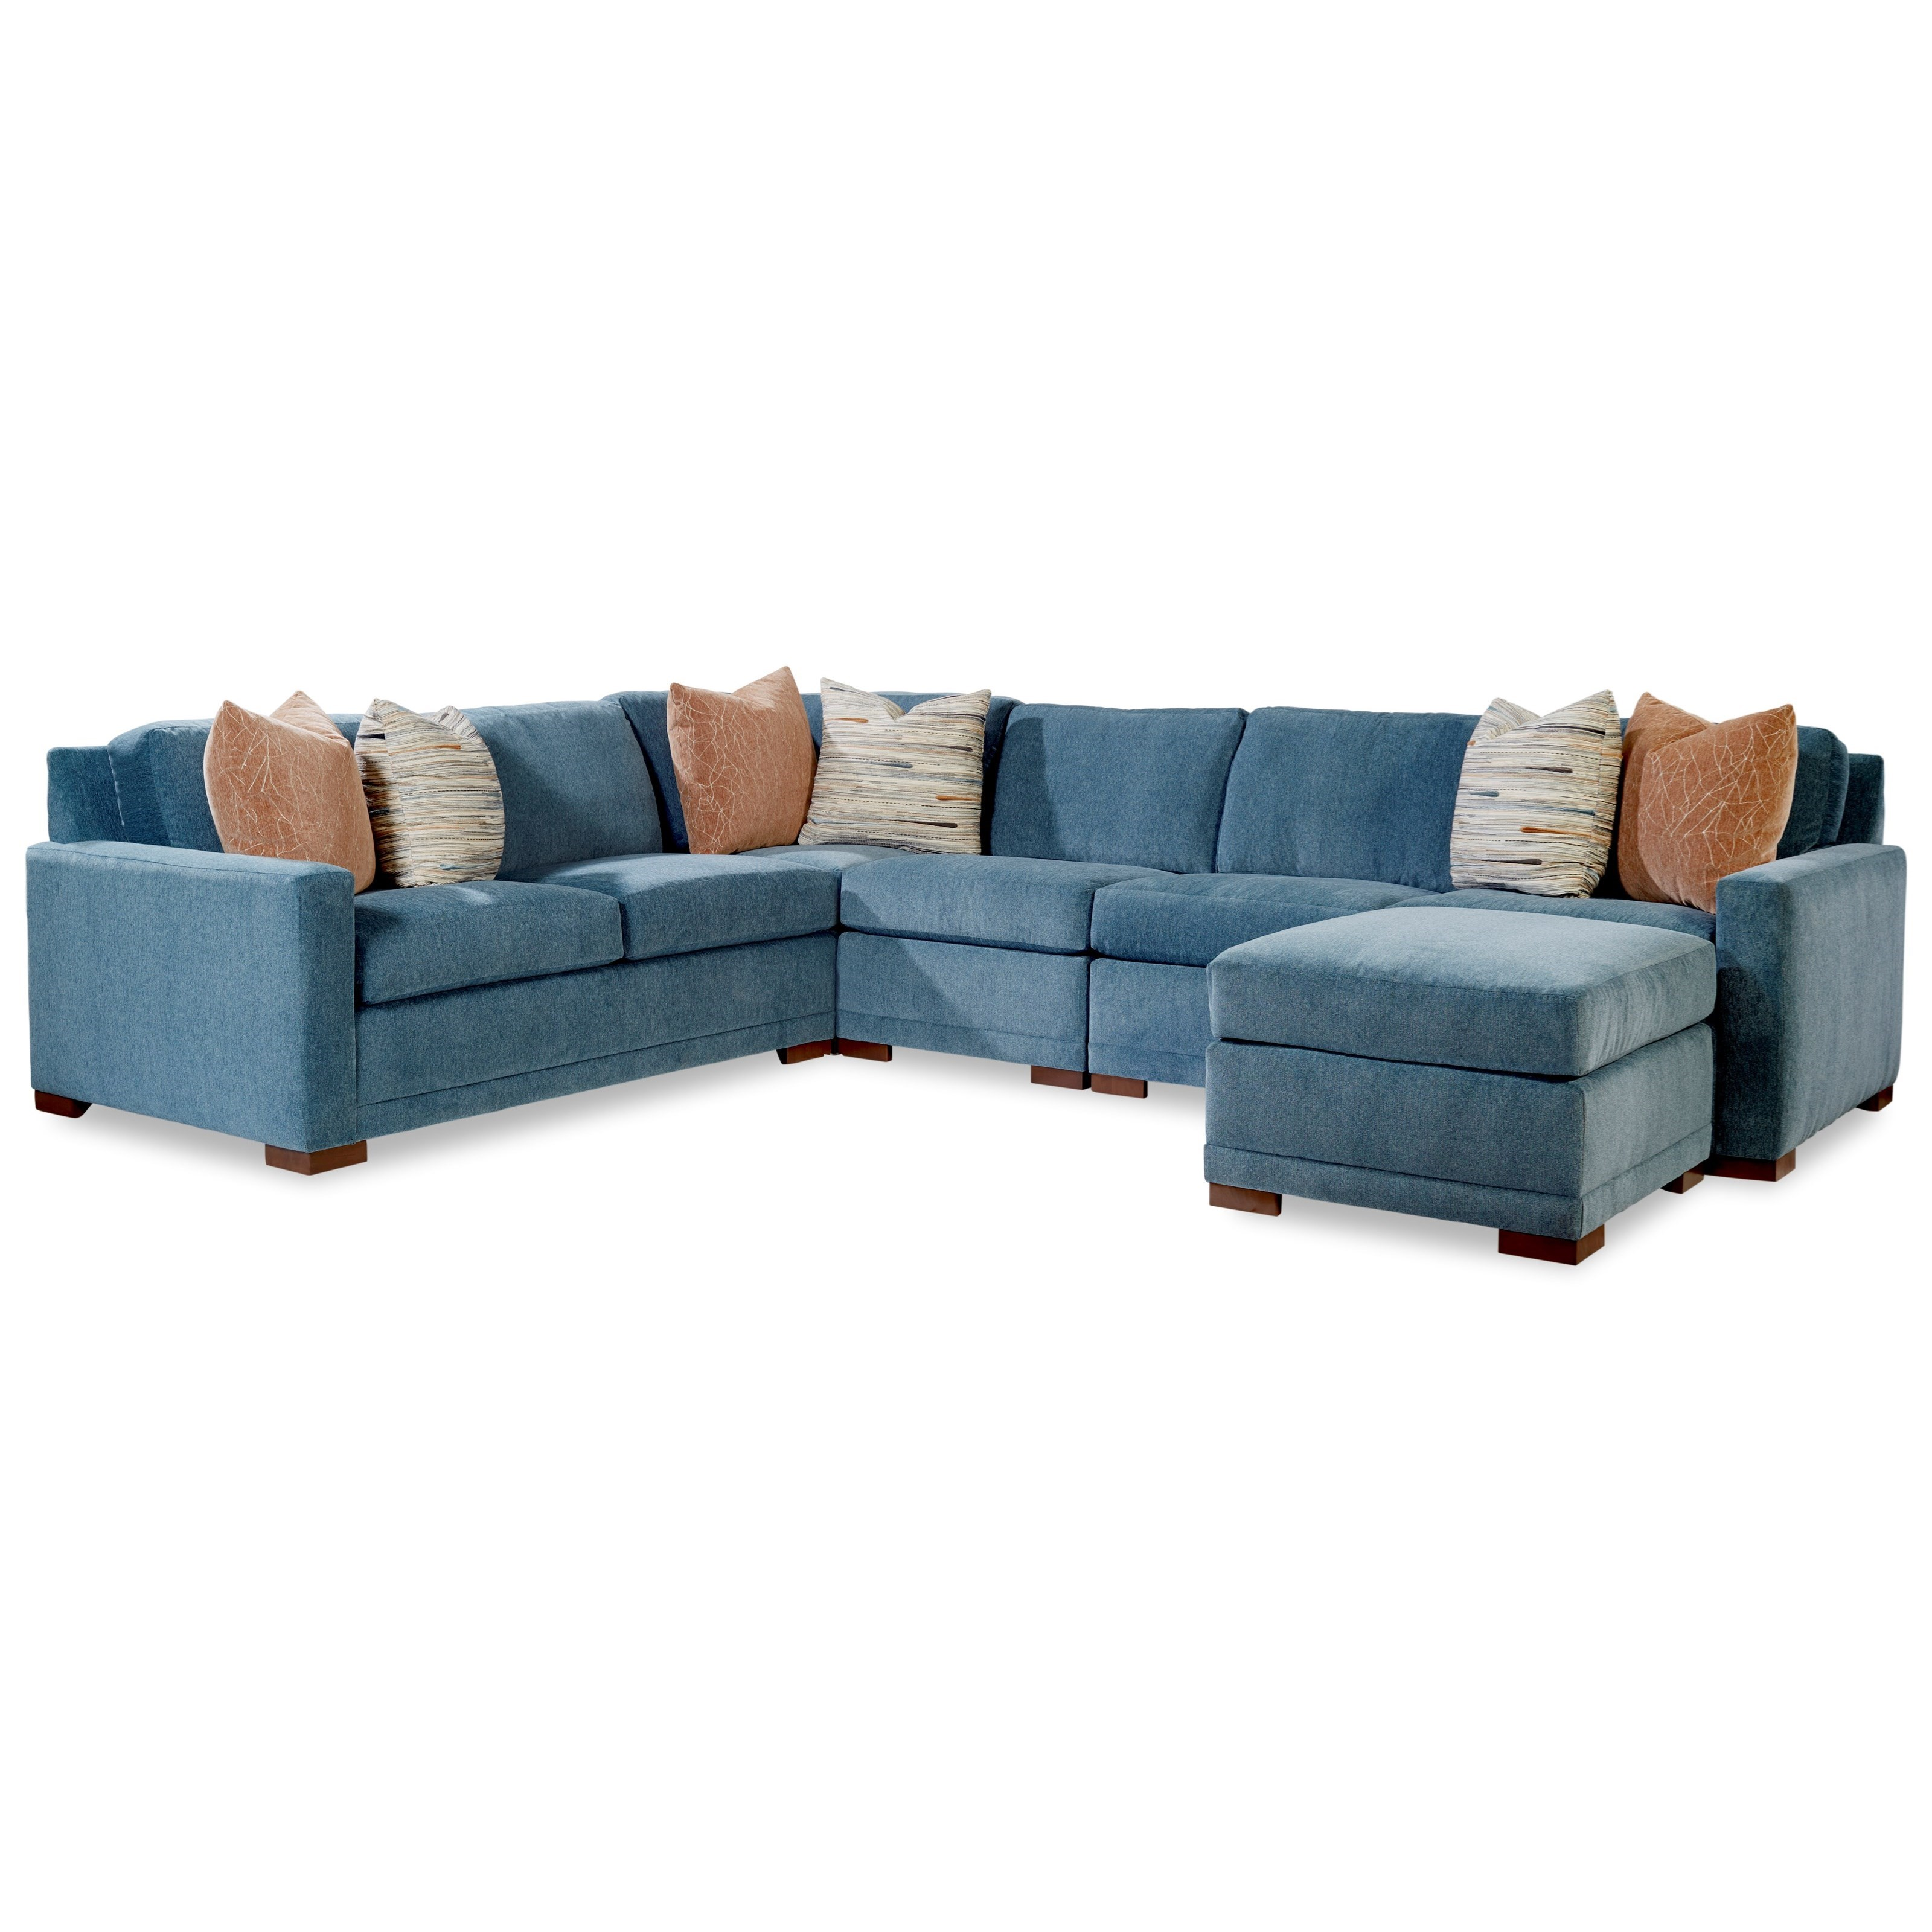 7290 Sectional by Huntington House at Belfort Furniture